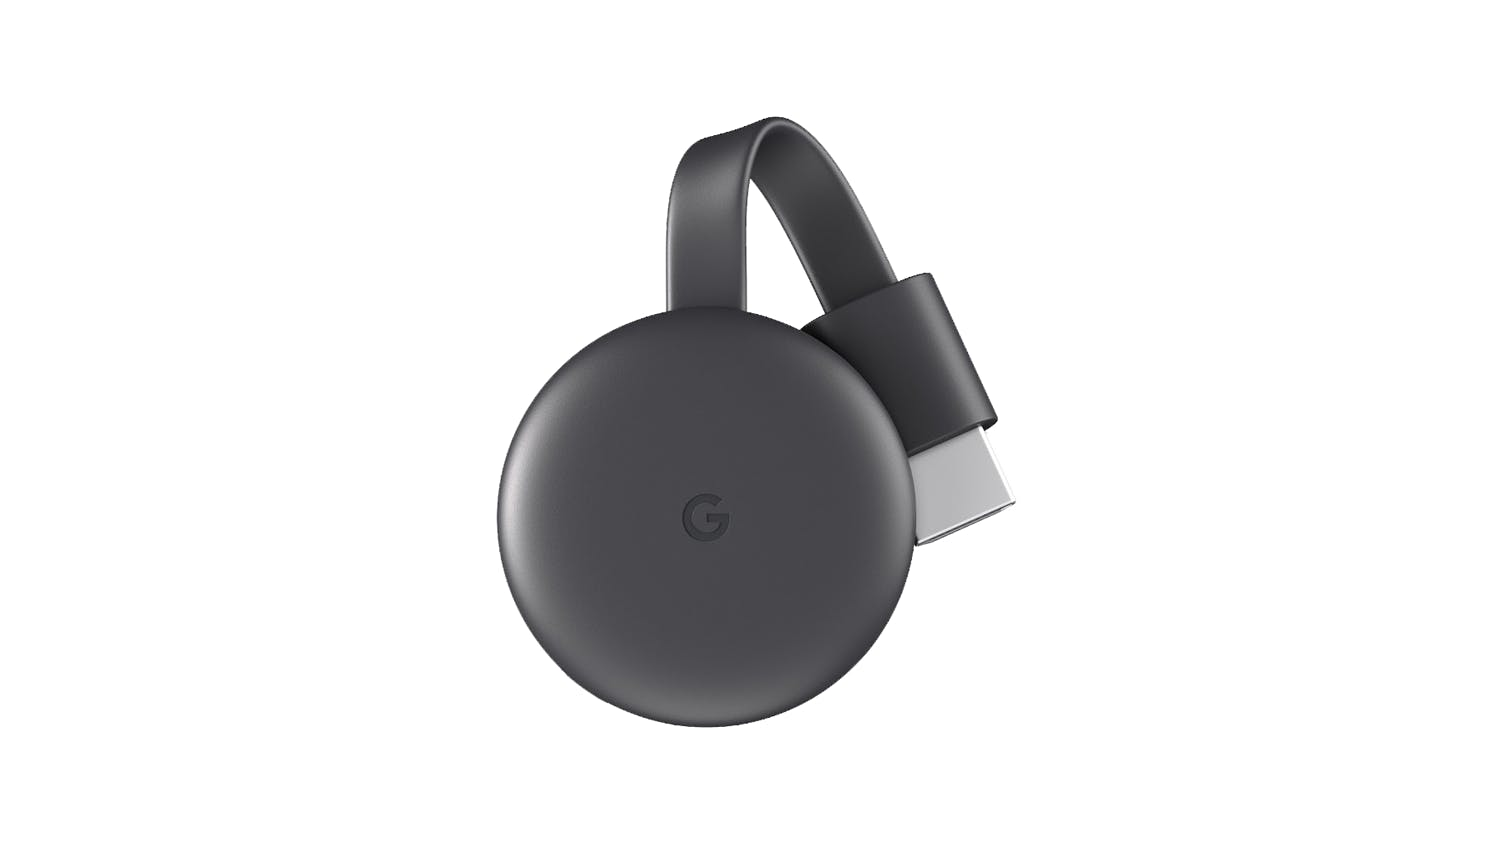 Google Chromecast (2018 model).